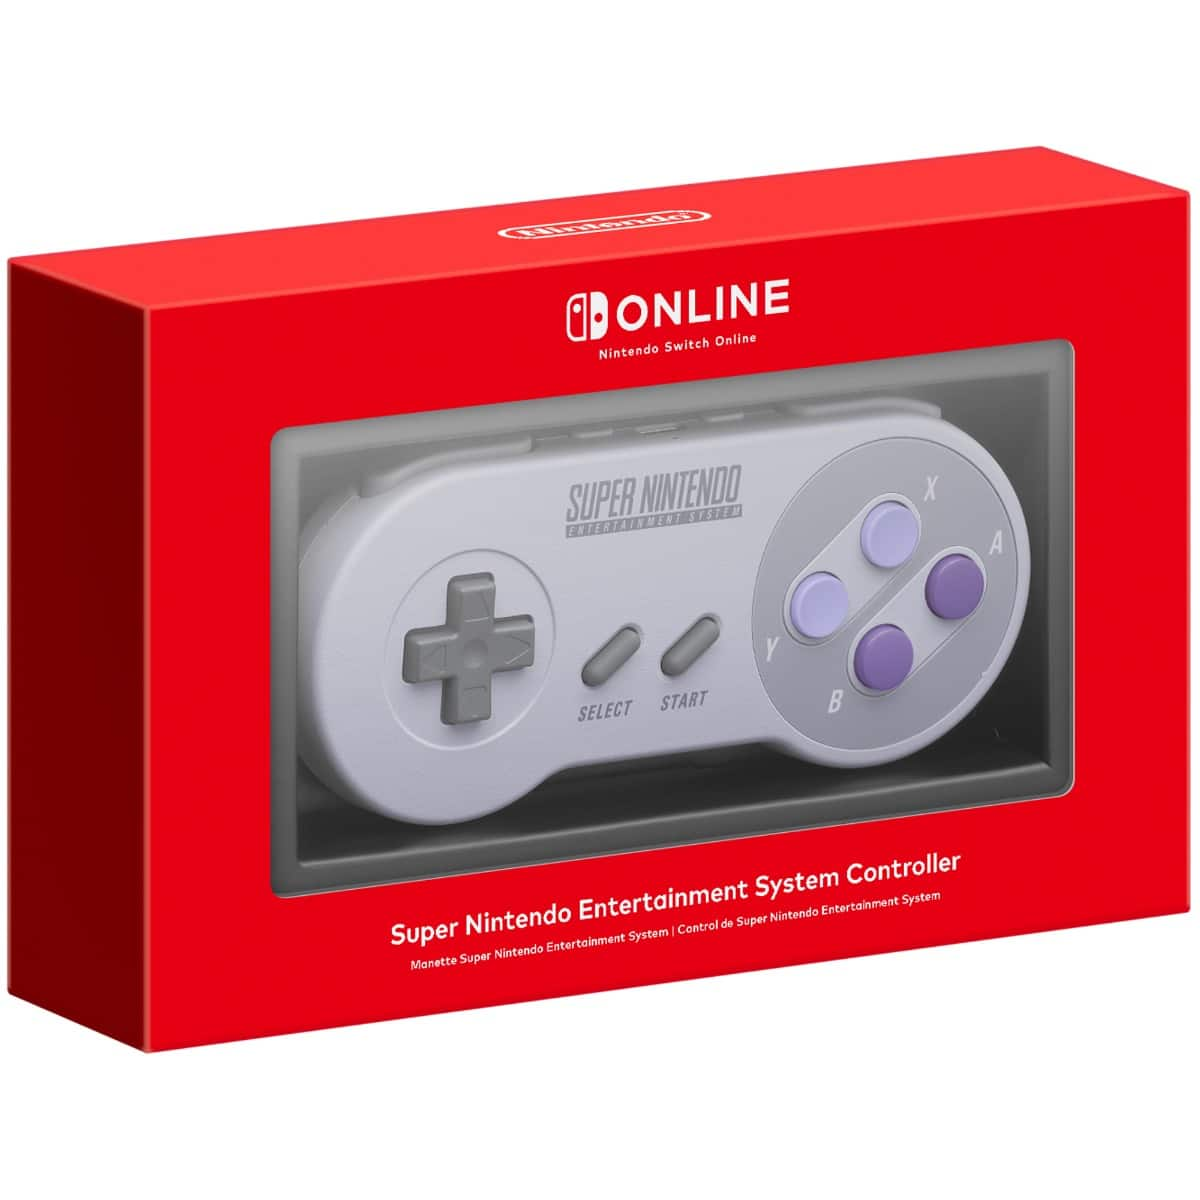 SNES Official Wireless Controllers for Nintendo Switch Available for Order Now (MSRP $29.99)